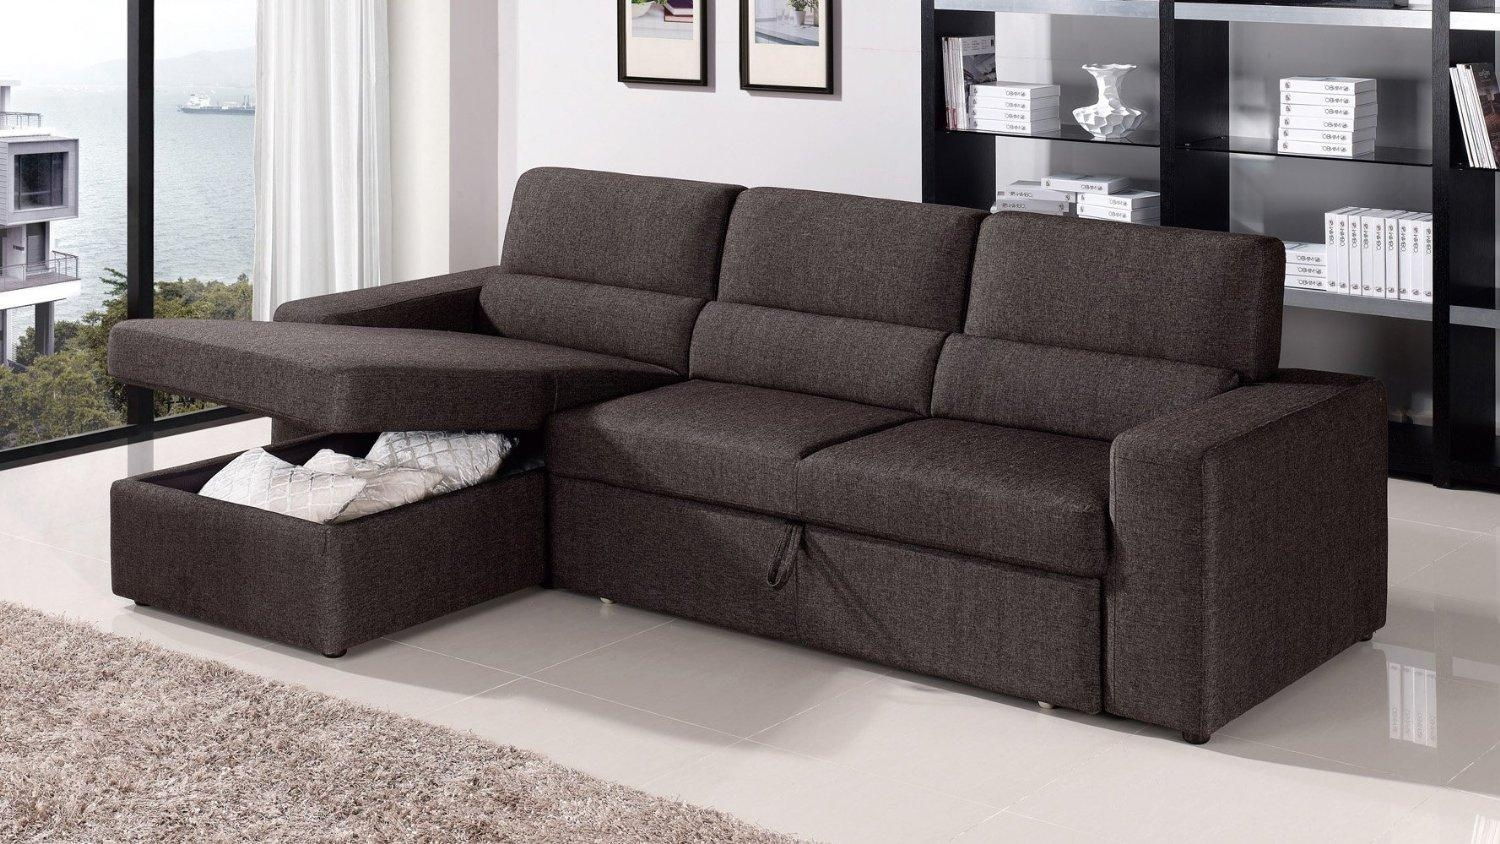 Sofa Sleeper With Chaise Lounge – Ansugallery Throughout Sofa Beds With Chaise Lounge (Image 15 of 20)